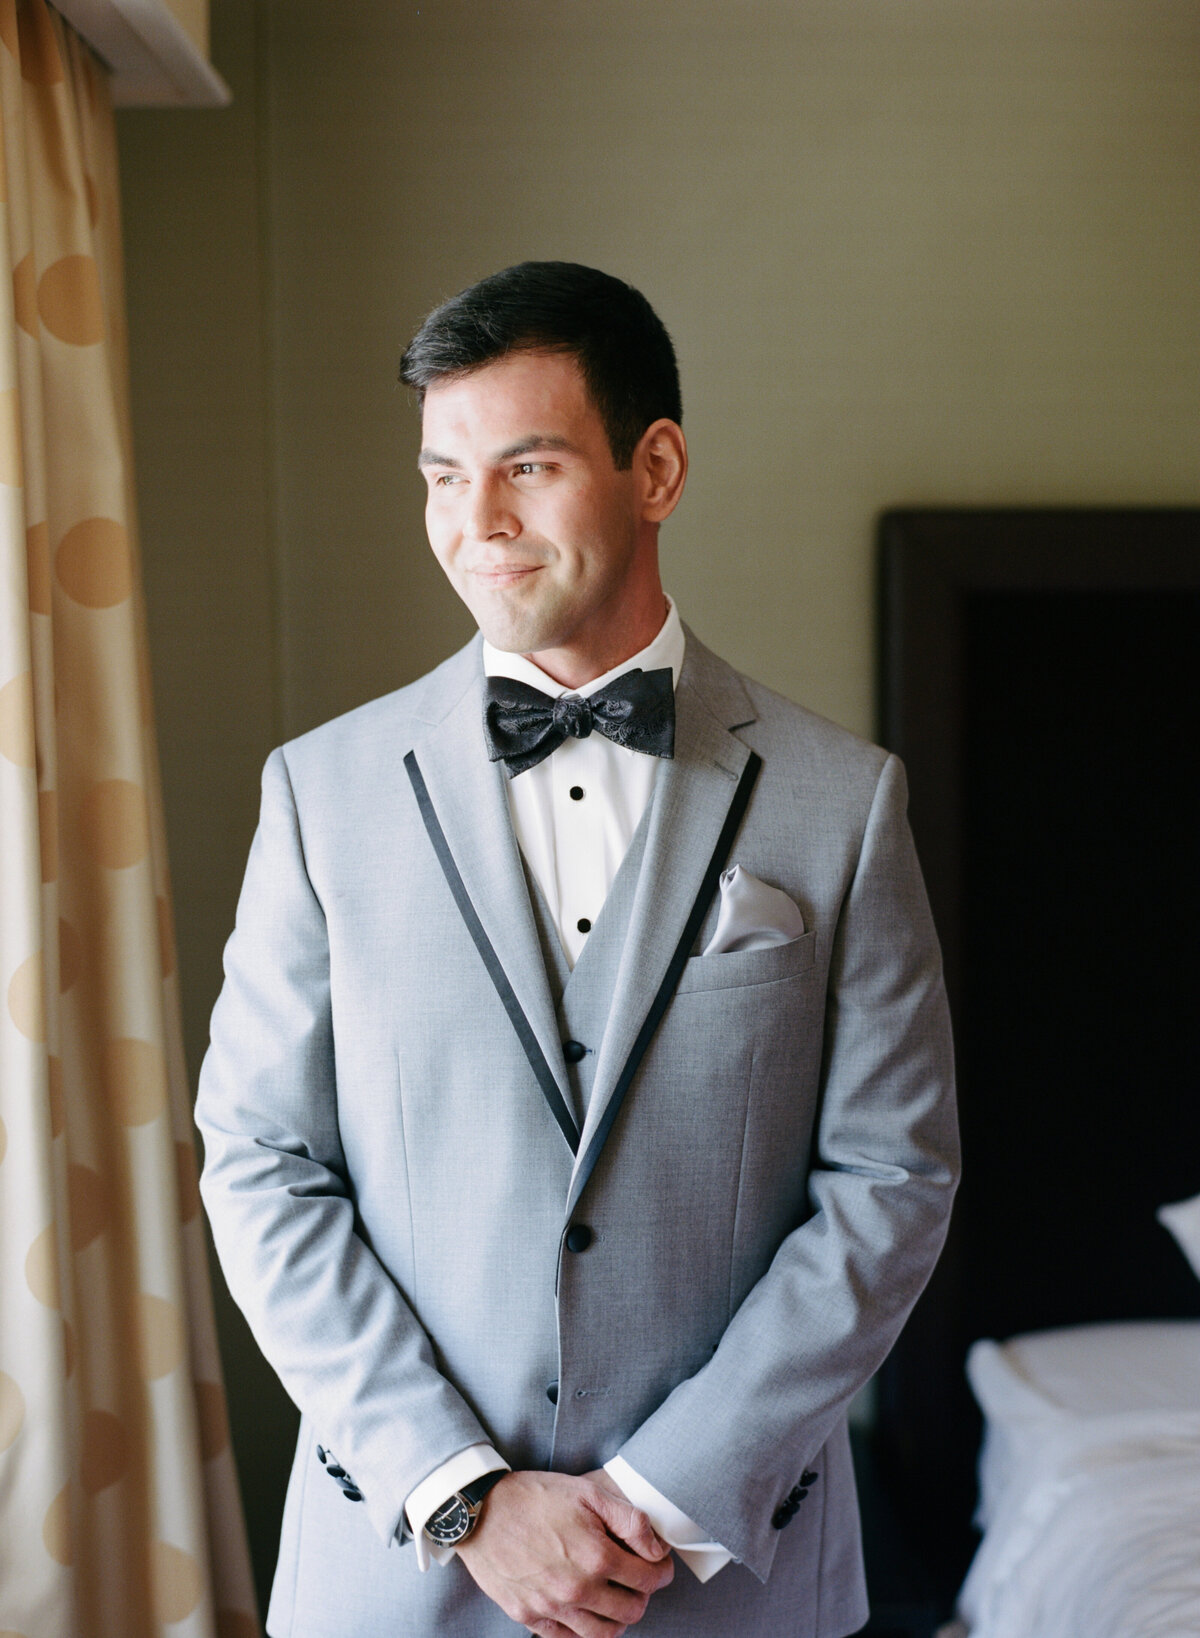 Groom getting ready shot and portrait